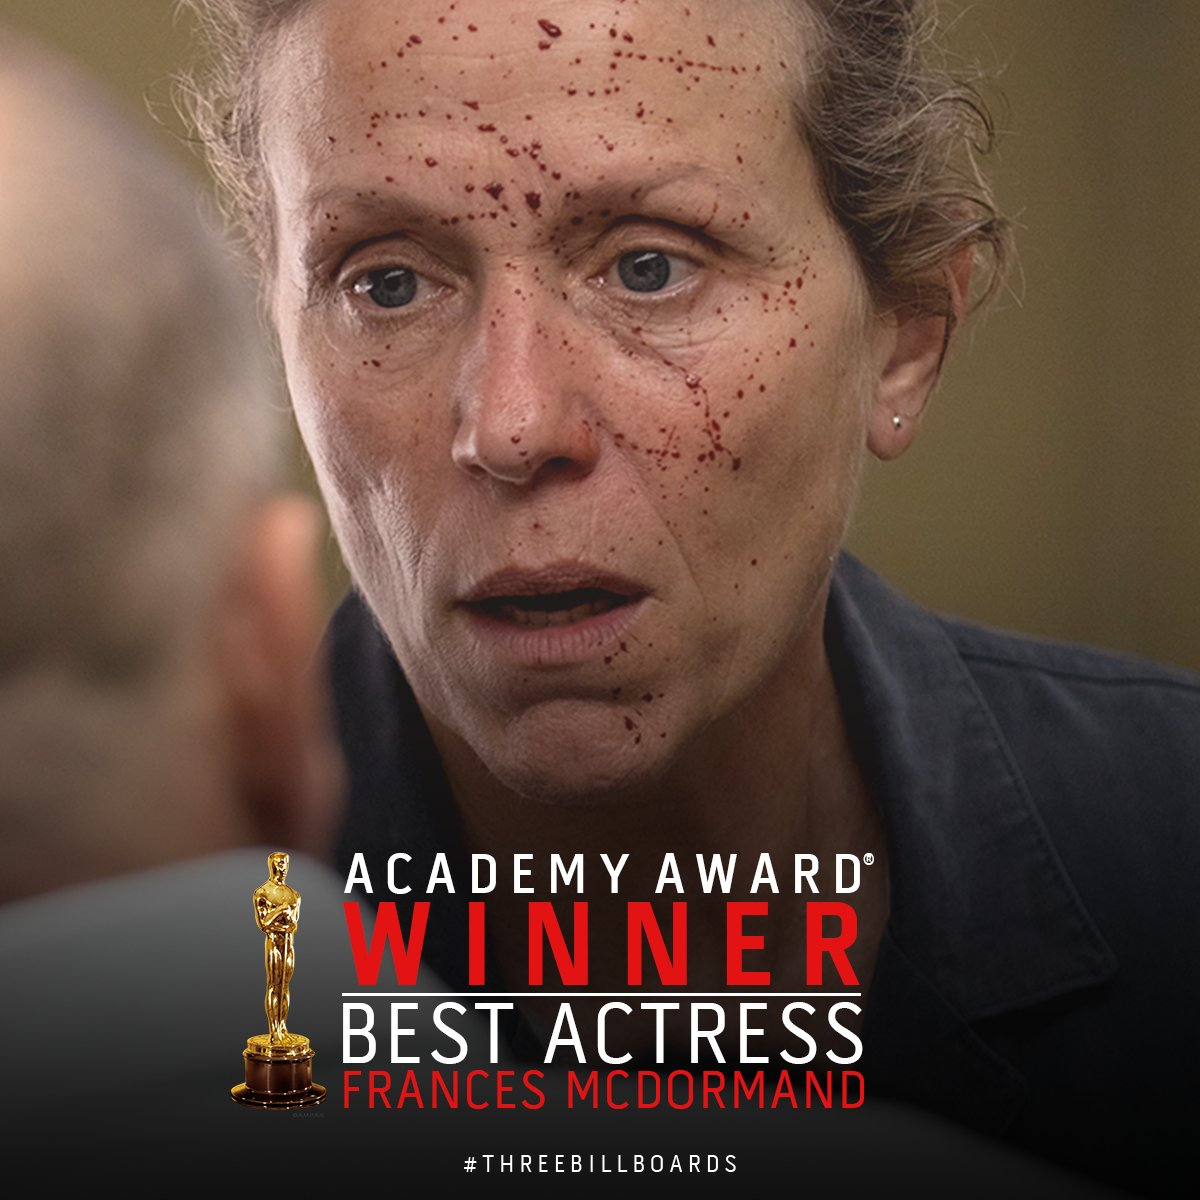 Blueprint pictures blueprintpics twitter look around ladies and gentlemen because we all have stories to share theacademy award winner for best actress frances mcdormand malvernweather Image collections